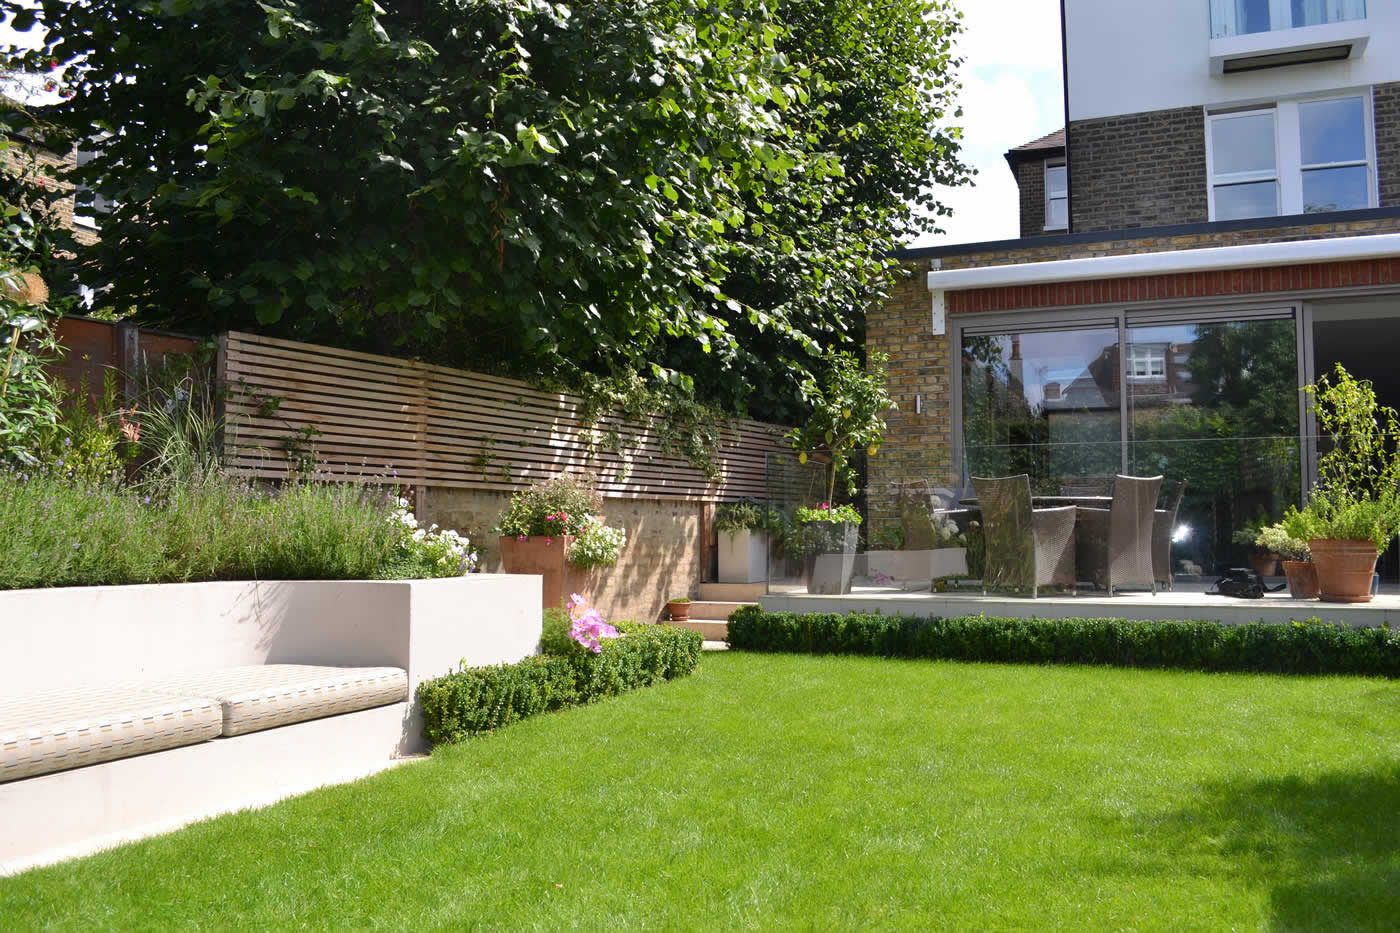 Lovely Low Maintenance Family Garden With Raised Bed For